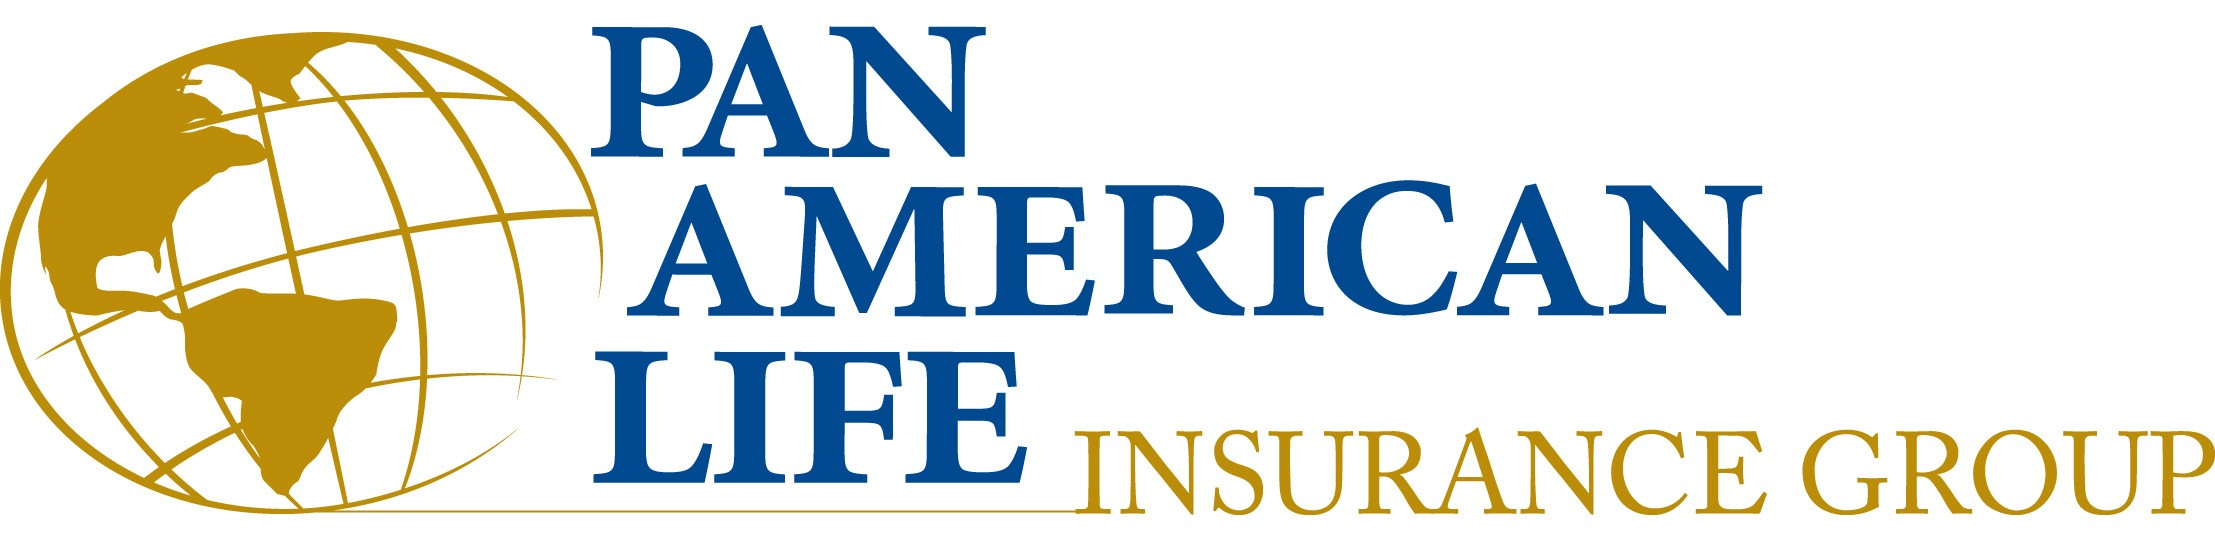 insurance_group_logo